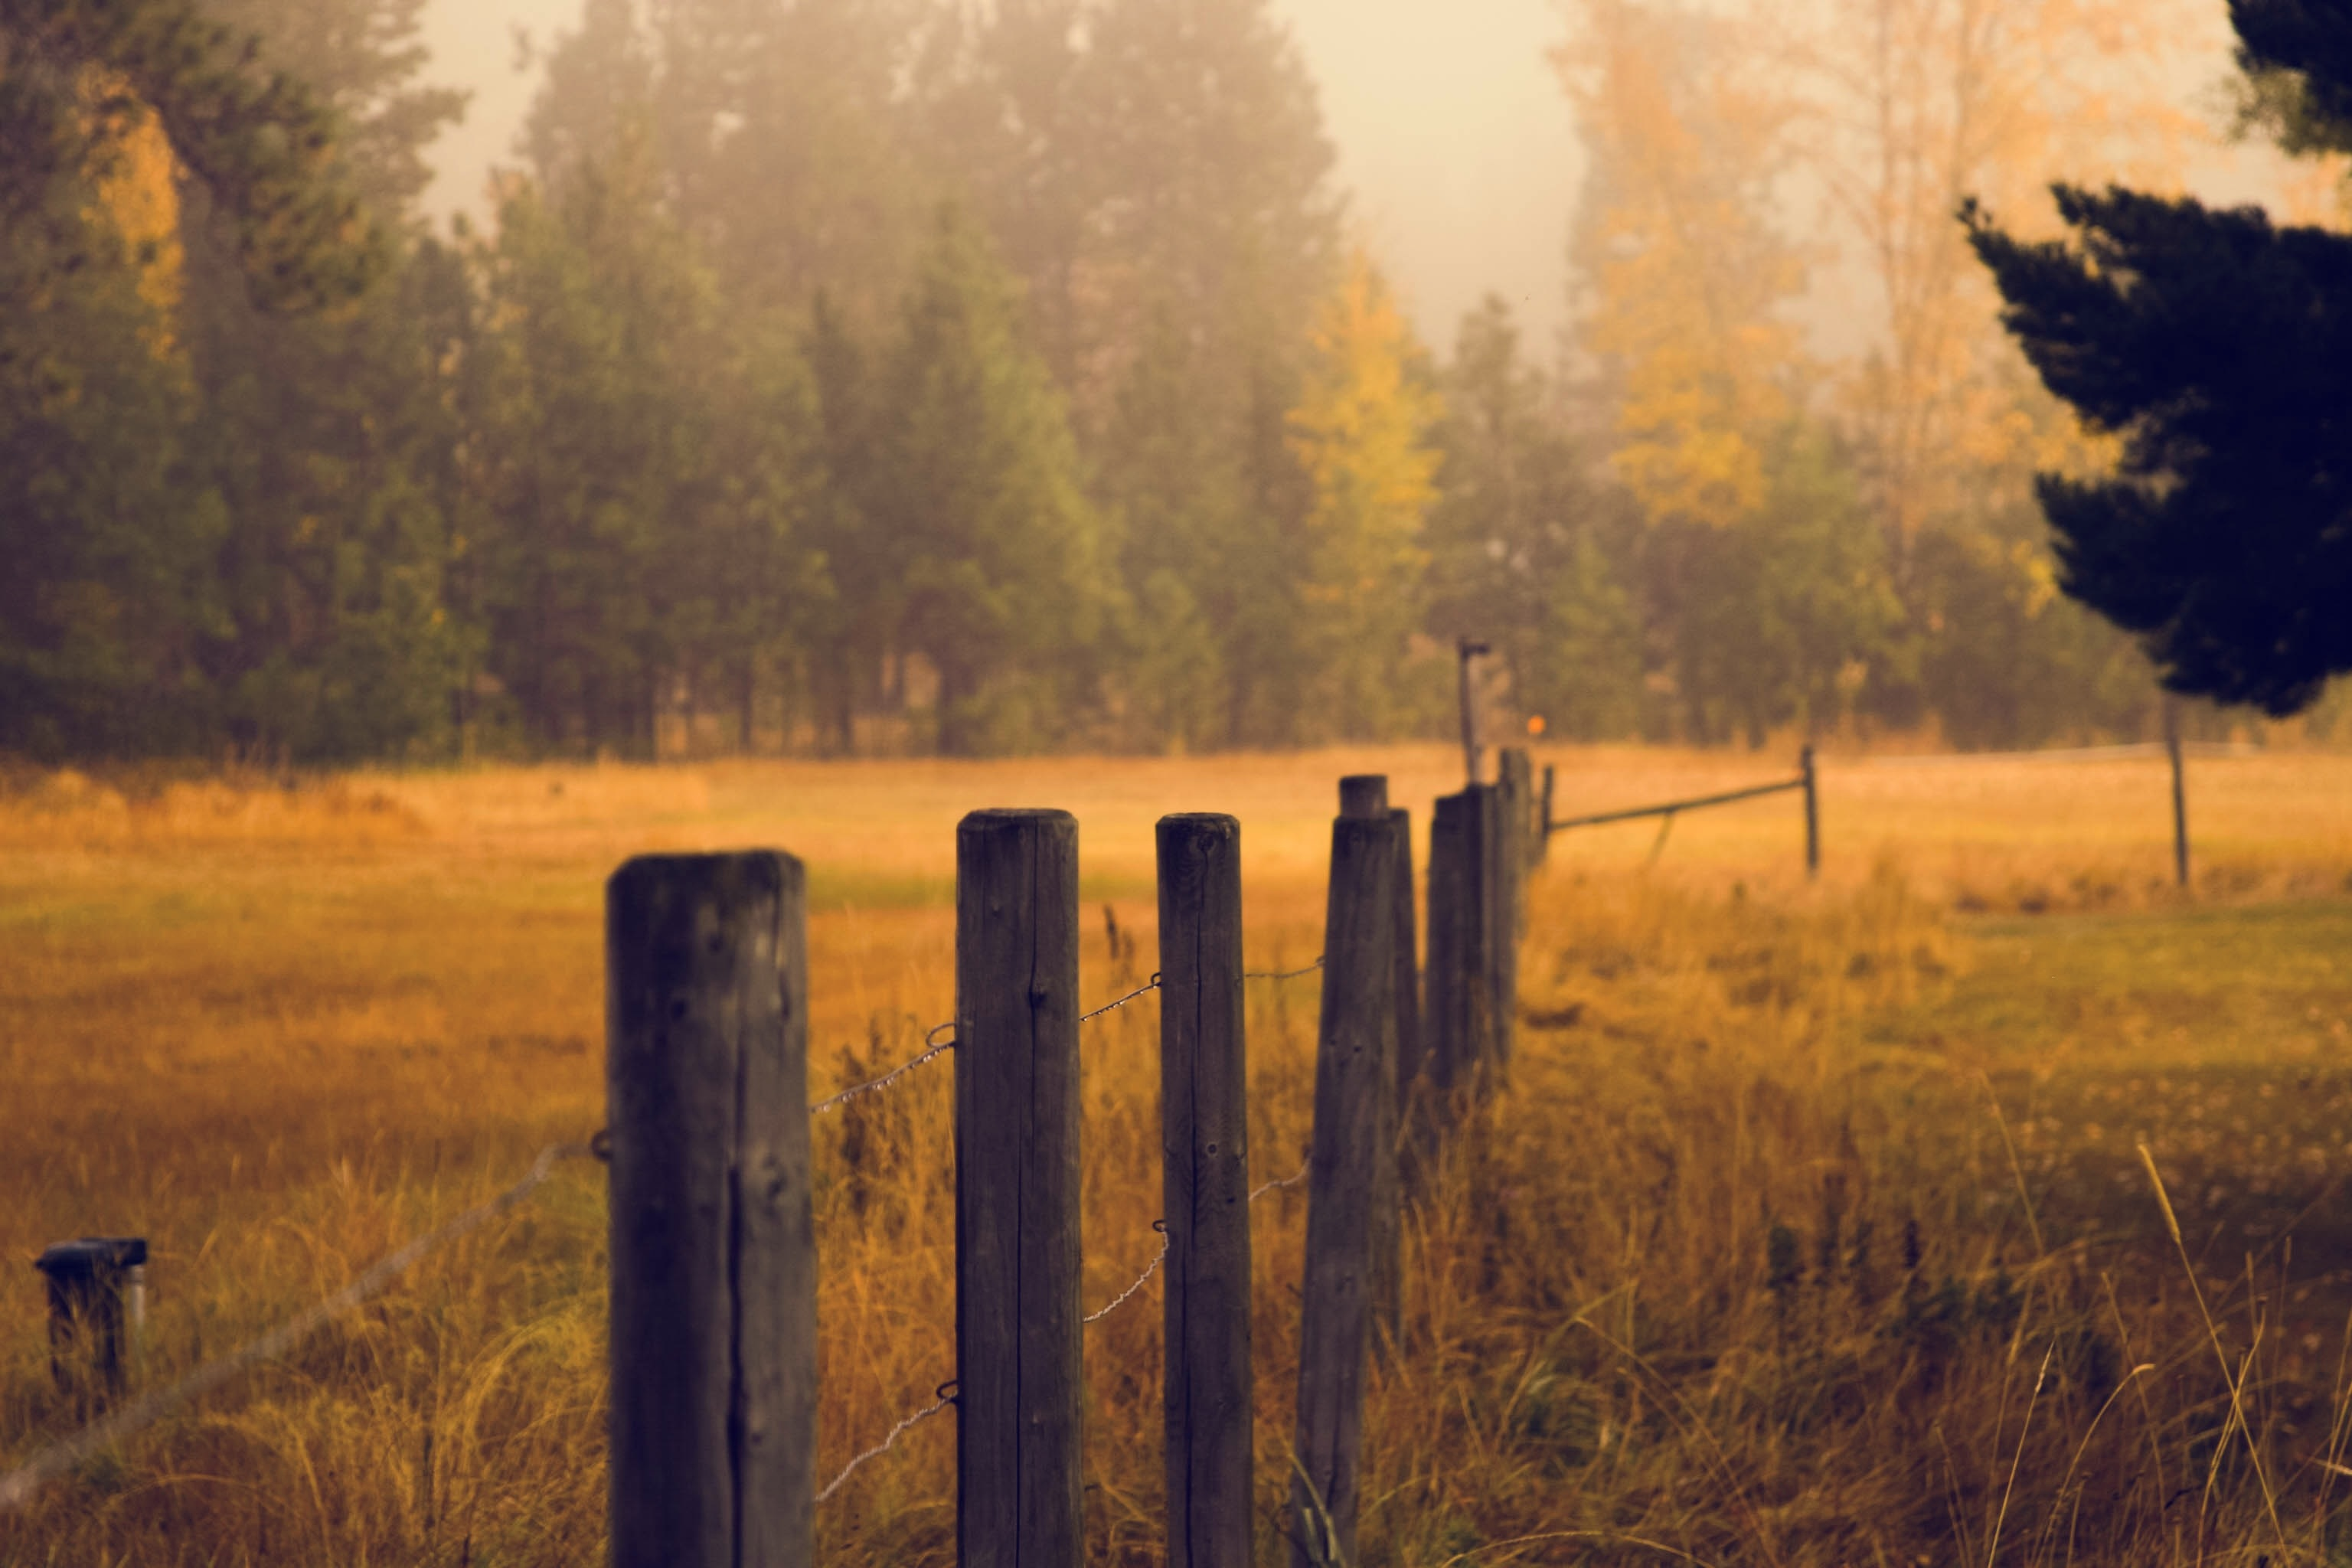 Field fence, field, poles, wire, fence, nature